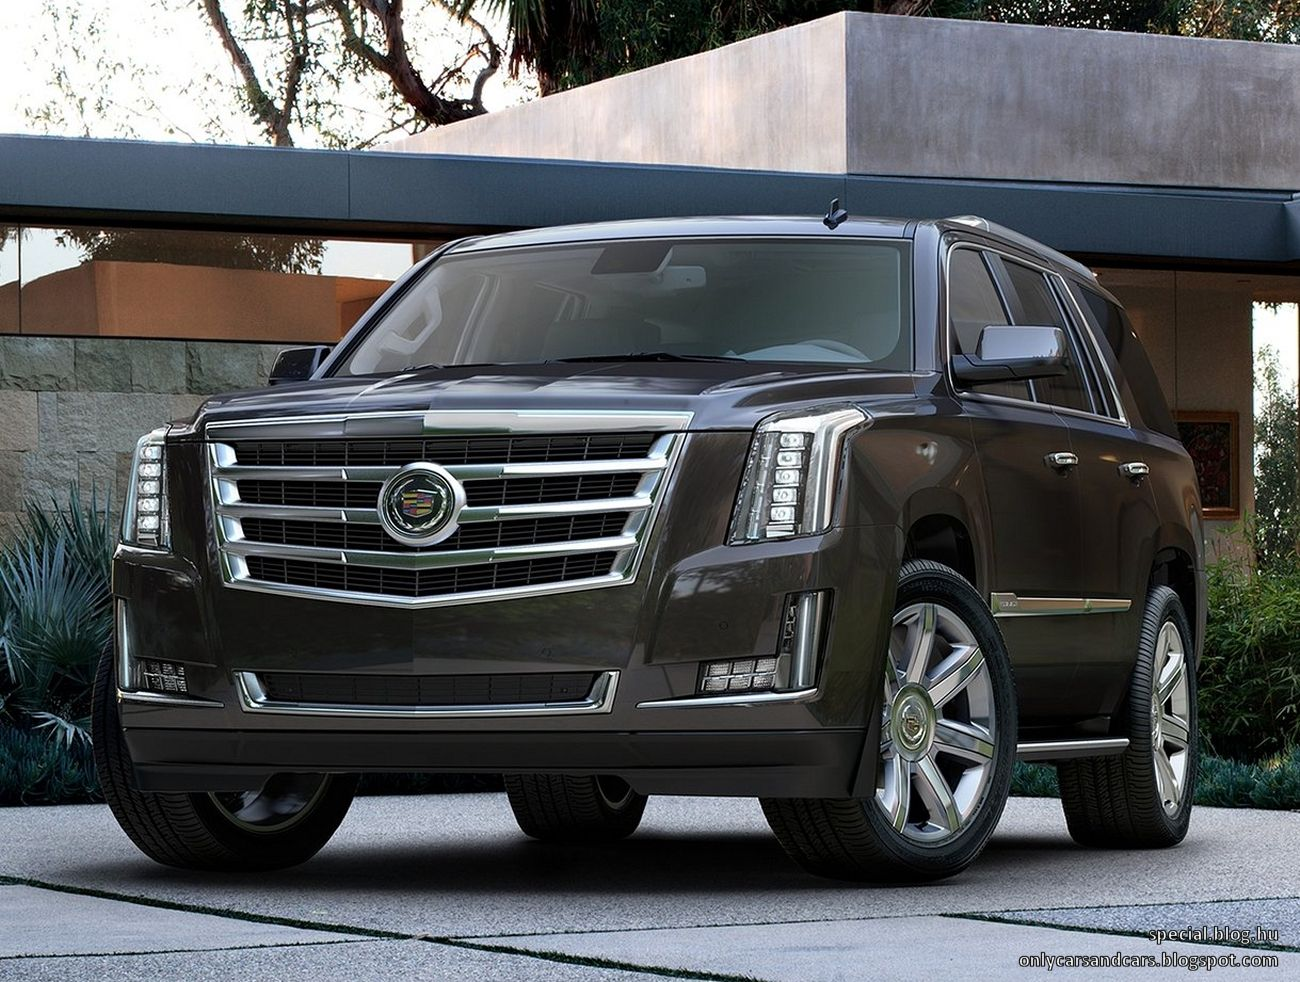 You can bookmark this page url http useddaewoocars blogspot com by 2013 12 cadillac escalade 2014 html